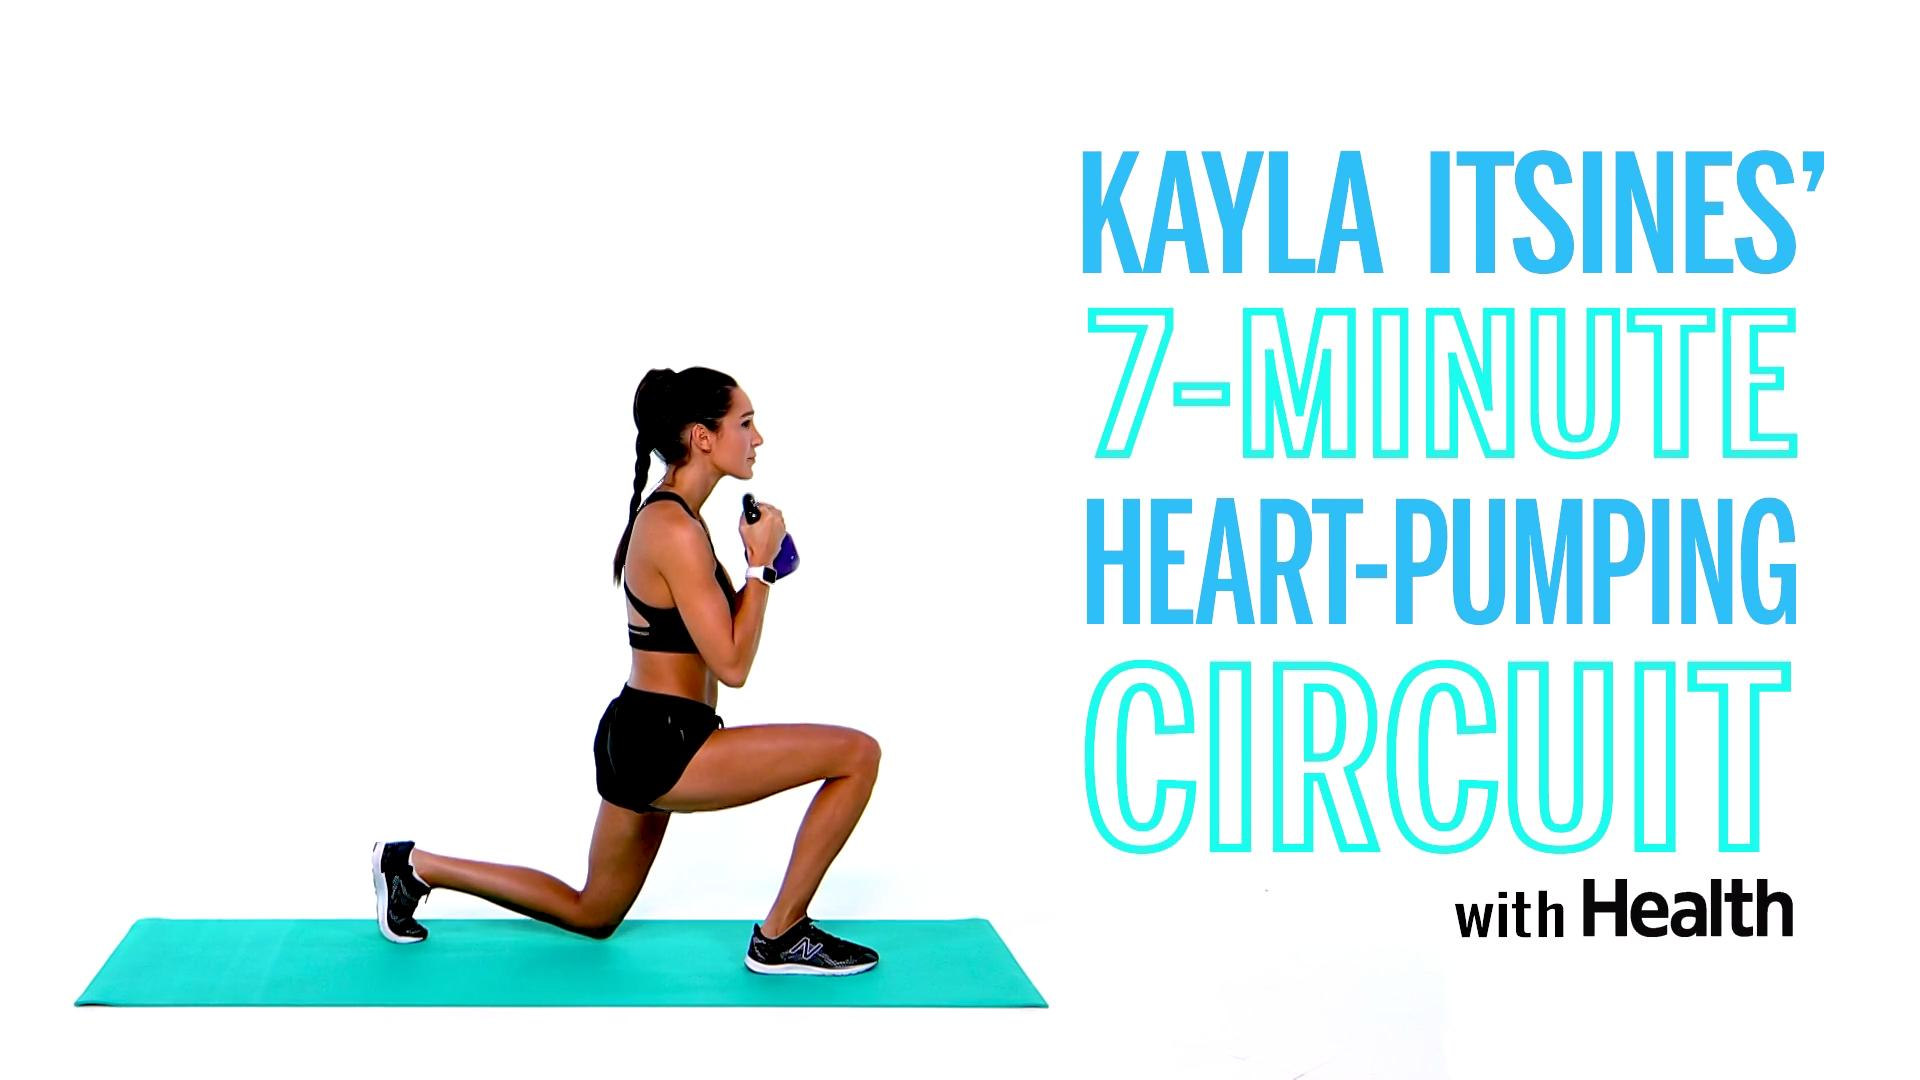 Get Your Heart Pumping With This 7-Minute Circuit From Kayla Itsines